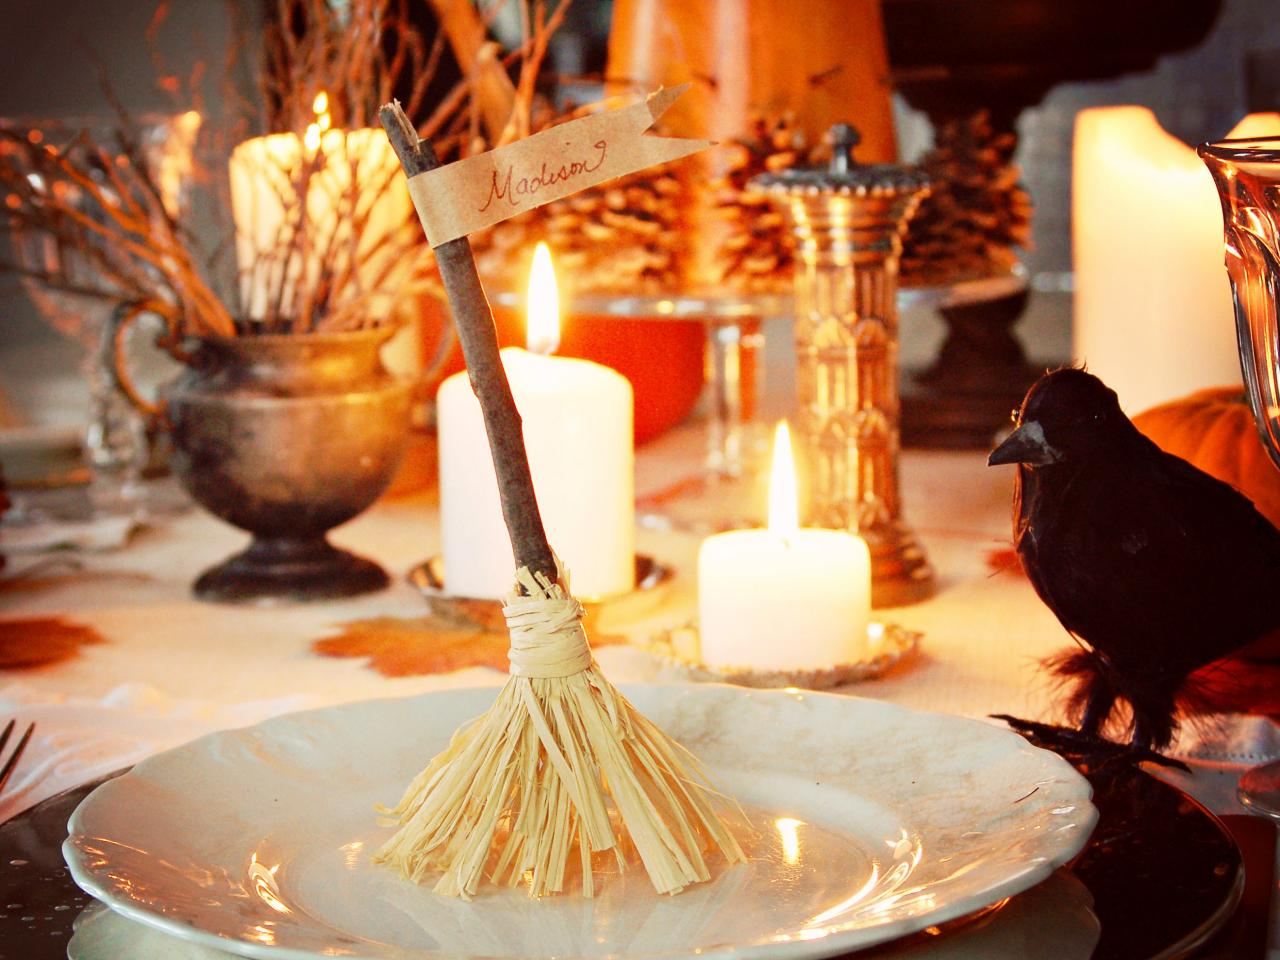 Addition of witch broom nameplates looks great with crow and candles for spooky Halloween table setting.